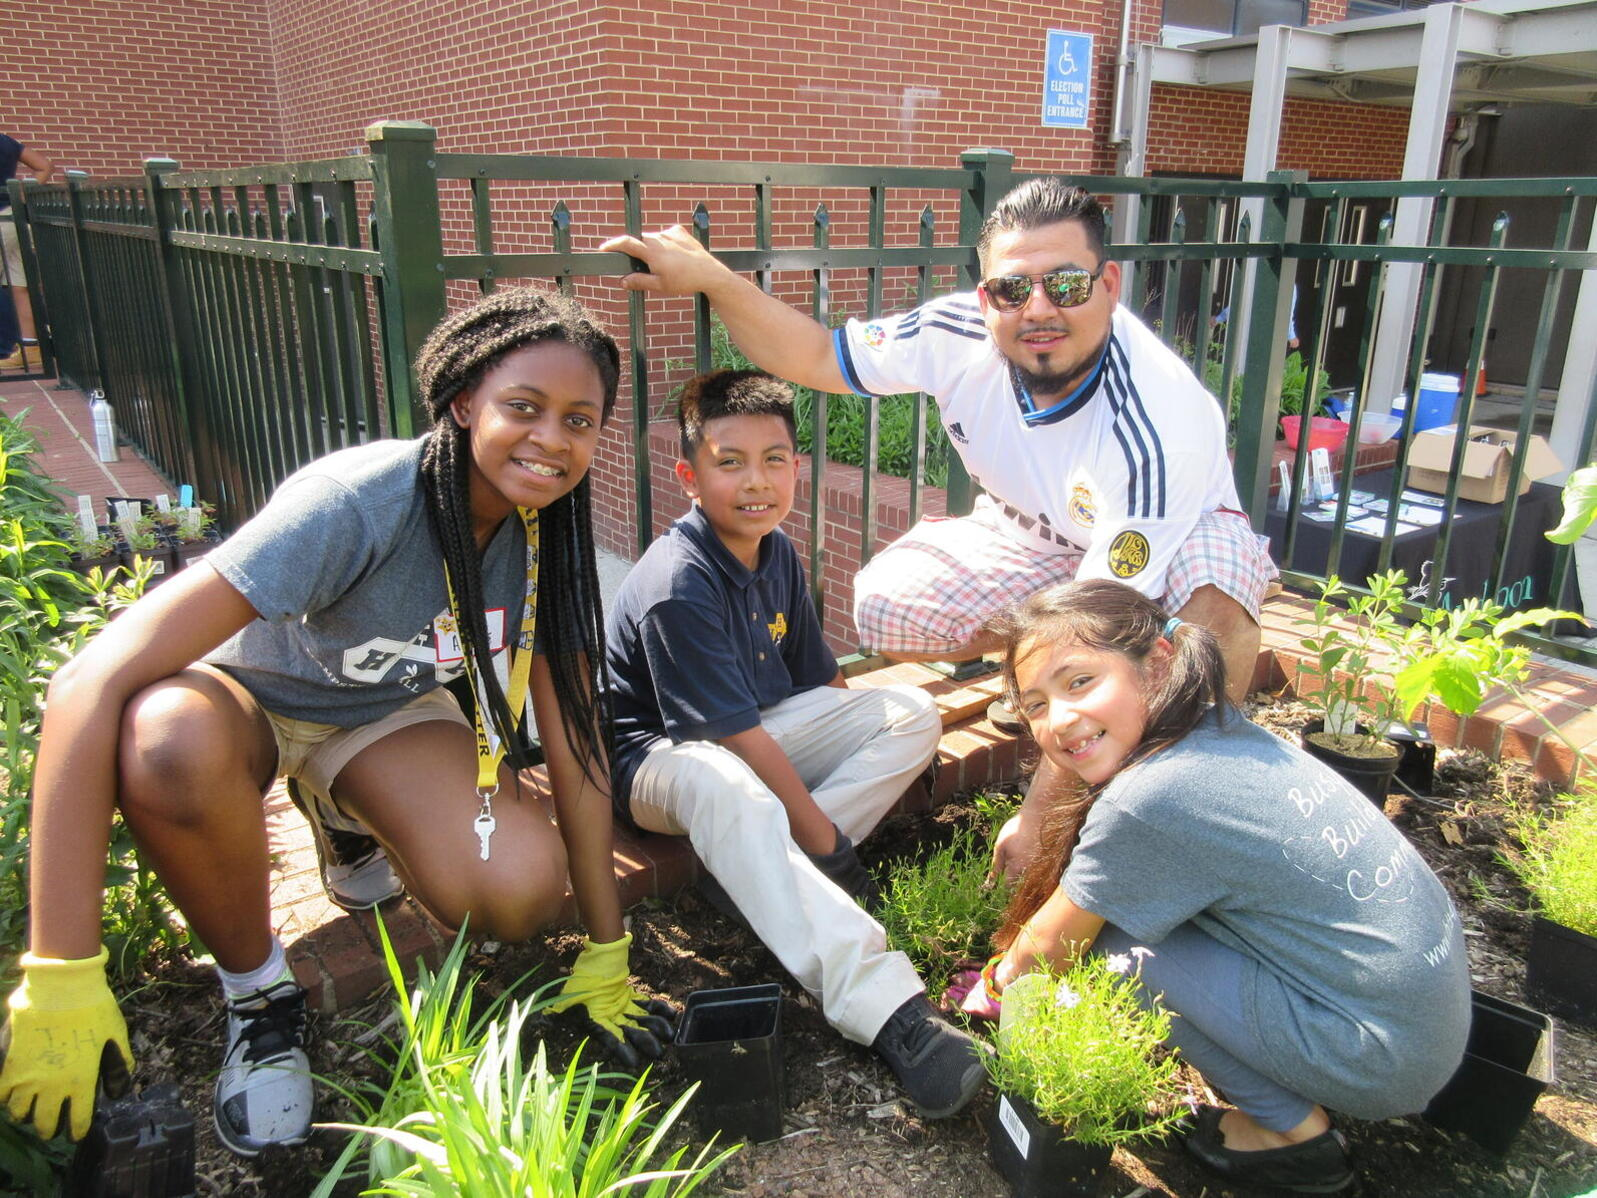 Patterson Park Audubon's Green Leaders helping with a native plant garden. Green Leaders is an after-school program for eco-minded middle schoolers grades 6-8 looking to get active about climate change.